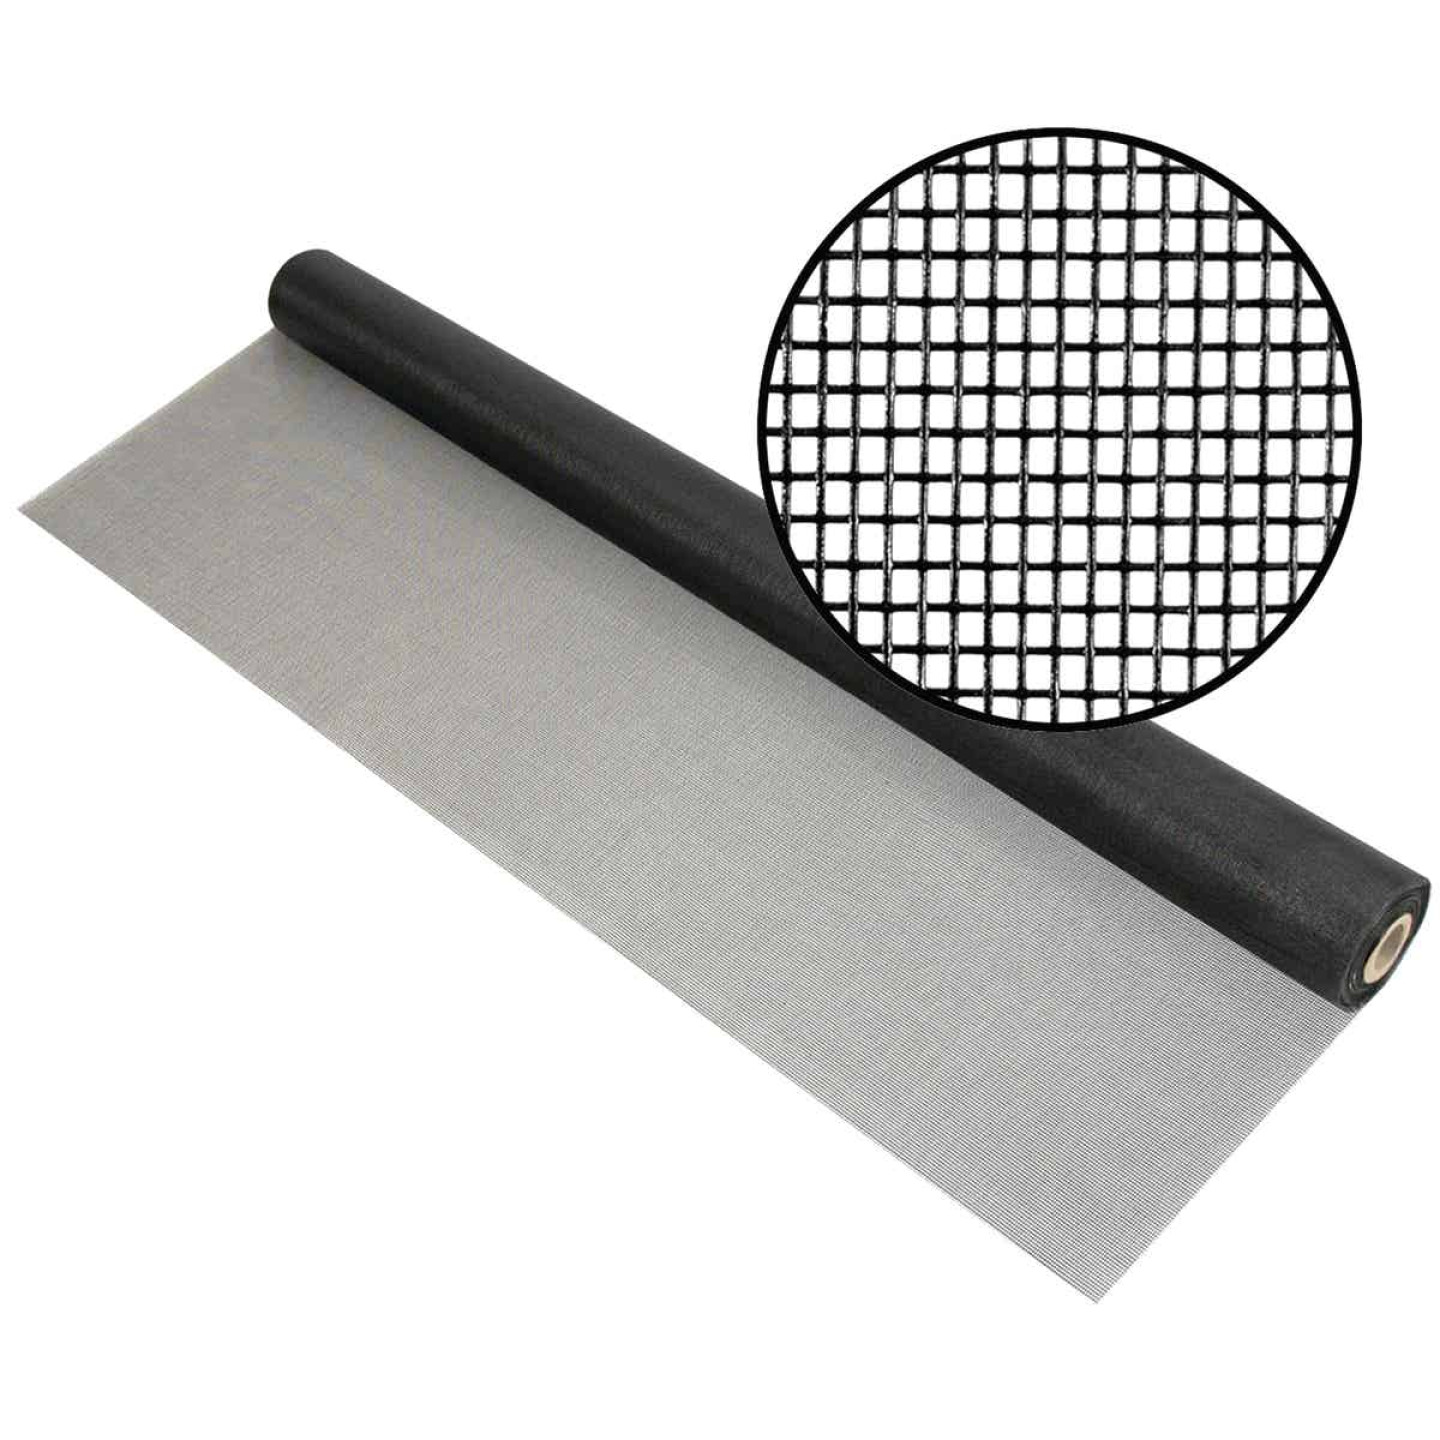 Phifer 36 In. x 100 Ft. Charcoal Fiberglass Pool Screen Image 1